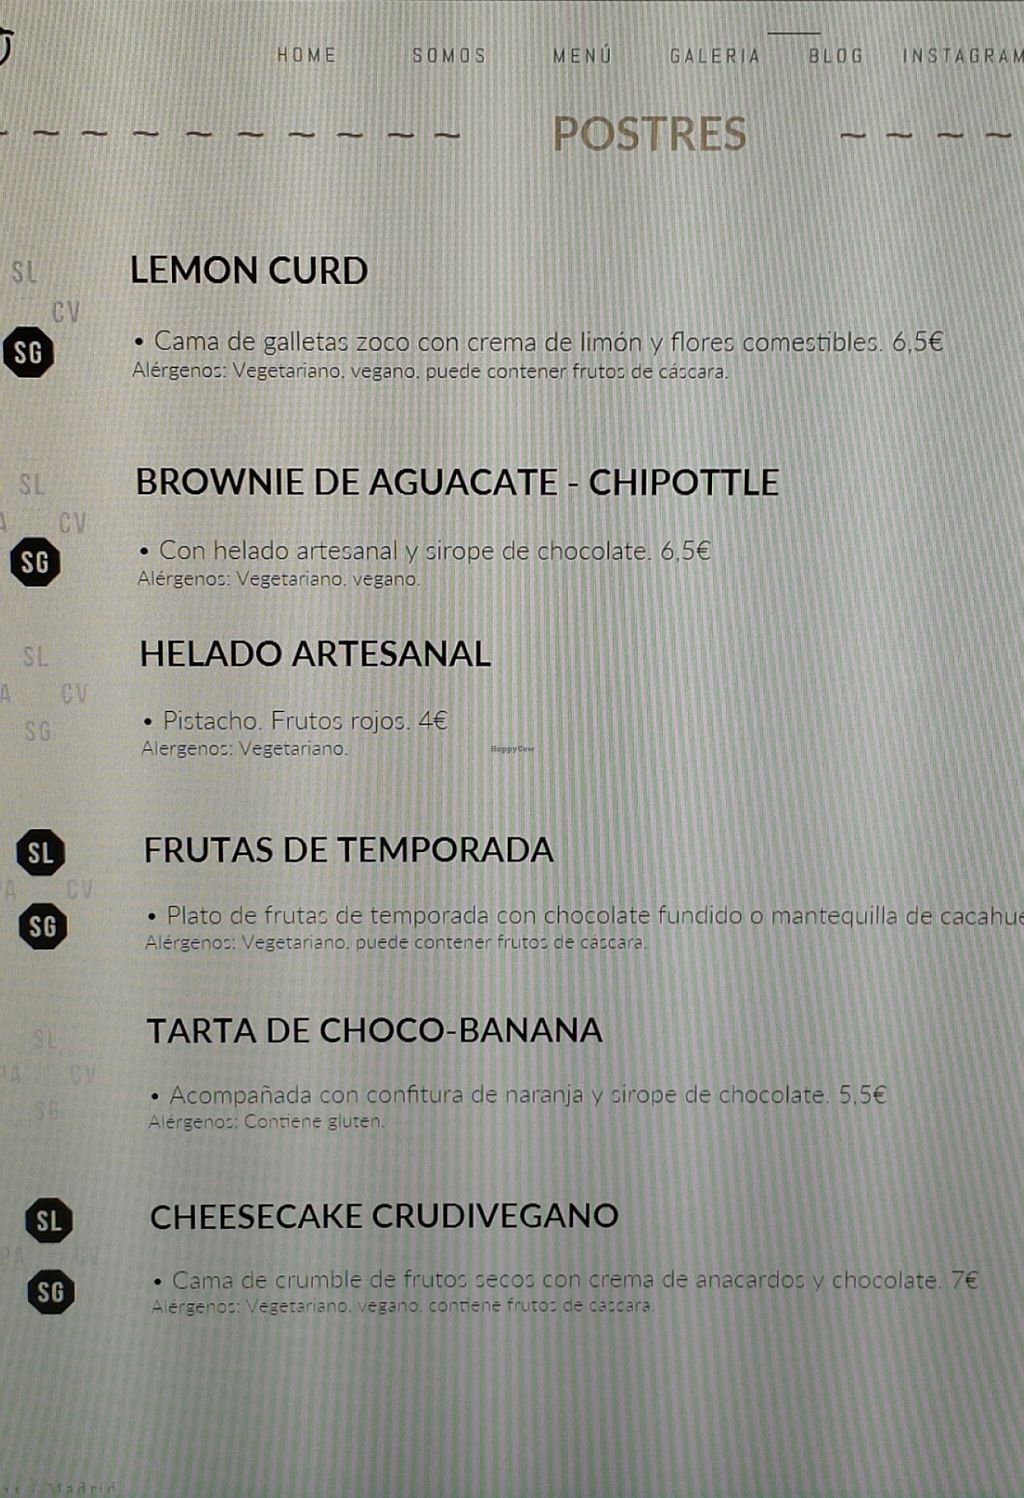 """Photo of CLOSED: Zoco Comidero-Bar  by <a href=""""/members/profile/NievesR"""">NievesR</a> <br/>Desserts <br/> January 22, 2016  - <a href='/contact/abuse/image/68499/133284'>Report</a>"""